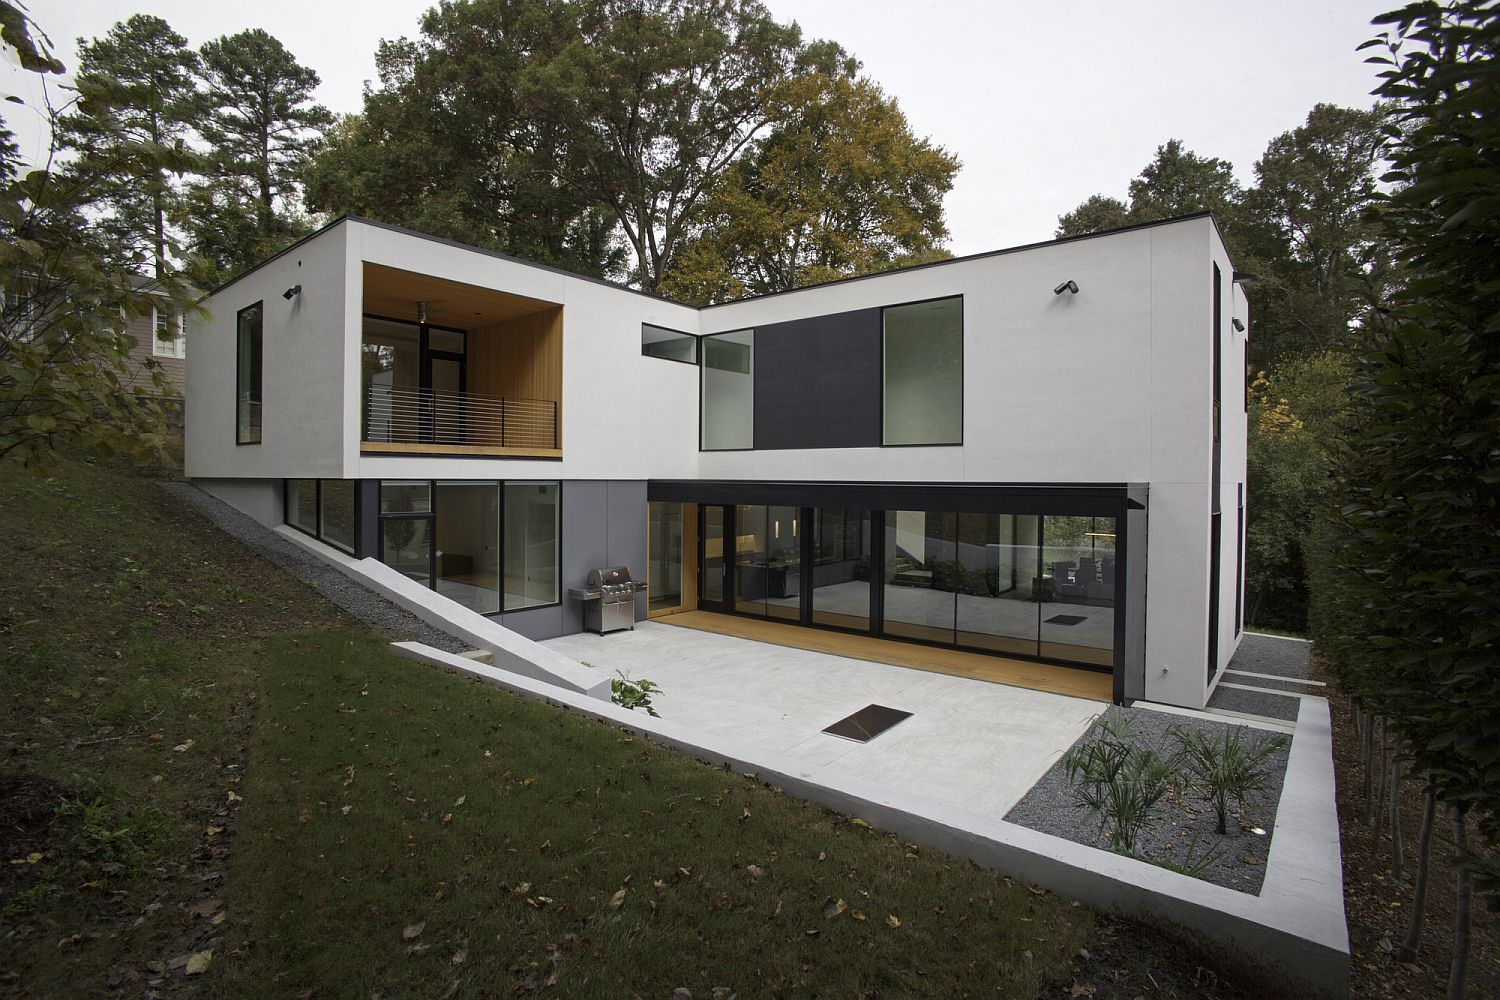 L Shaped Modern Minimal Residence On A Sloped Lot In Raleigh Modern House Design L Shaped House Modern Architecture House